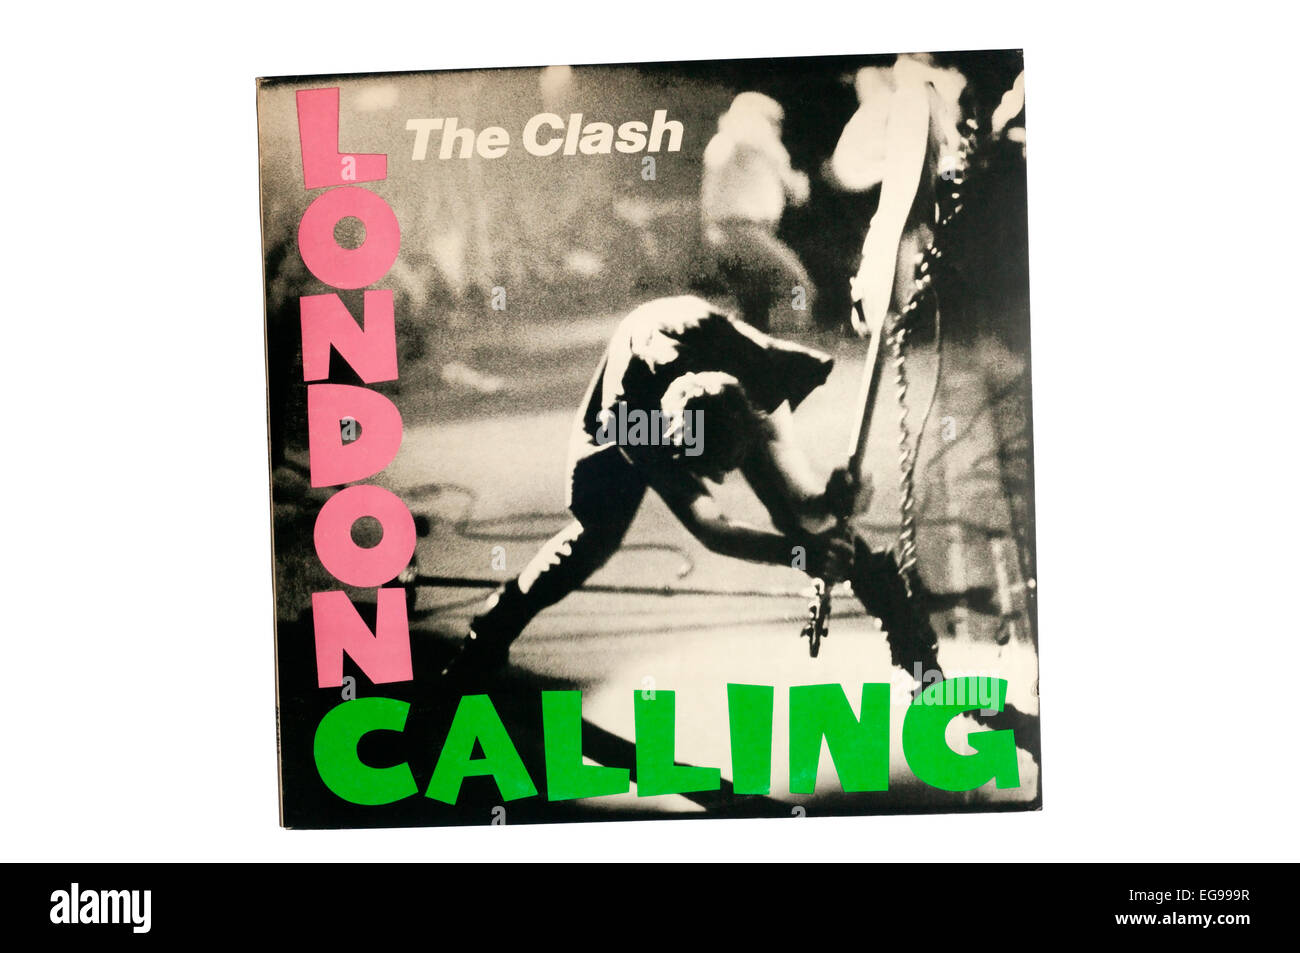 London Calling was the third studio album by English punk rock band The Clash. - Stock Image